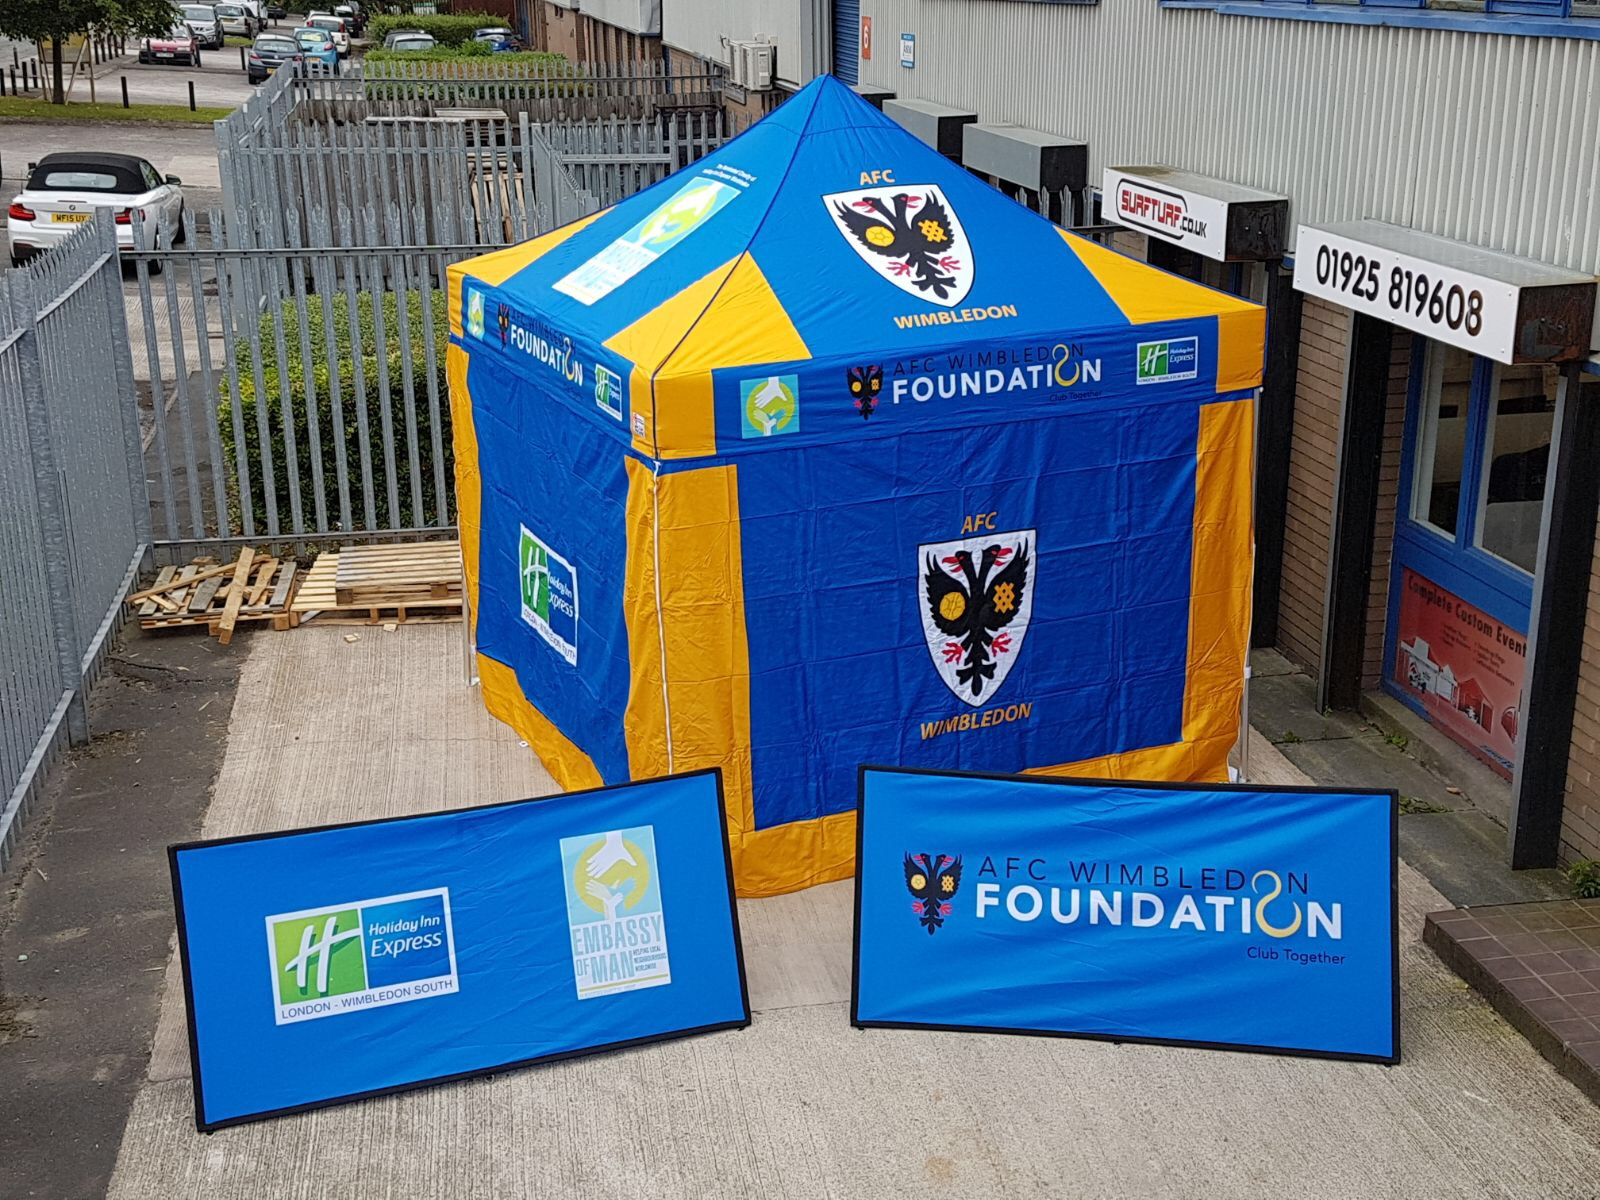 2897, 2897, Custom branded - tents and banners, IMG_0839.jpg, 597800, https://surfturf.co.uk/wp-content/uploads/2018/11/IMG_0839.jpg, https://surfturf.co.uk/custom-branding/img_0839/, Custom branded - tents and banners, 3, Custom branded - tents and banners, Custom branded - tents and banners, img_0839, inherit, 333, 2018-11-20 10:16:54, 2019-08-19 14:35:28, 0, image/jpeg, image, jpeg, https://surfturf.co.uk/wp-includes/images/media/default.png, 1600, 1200, Array